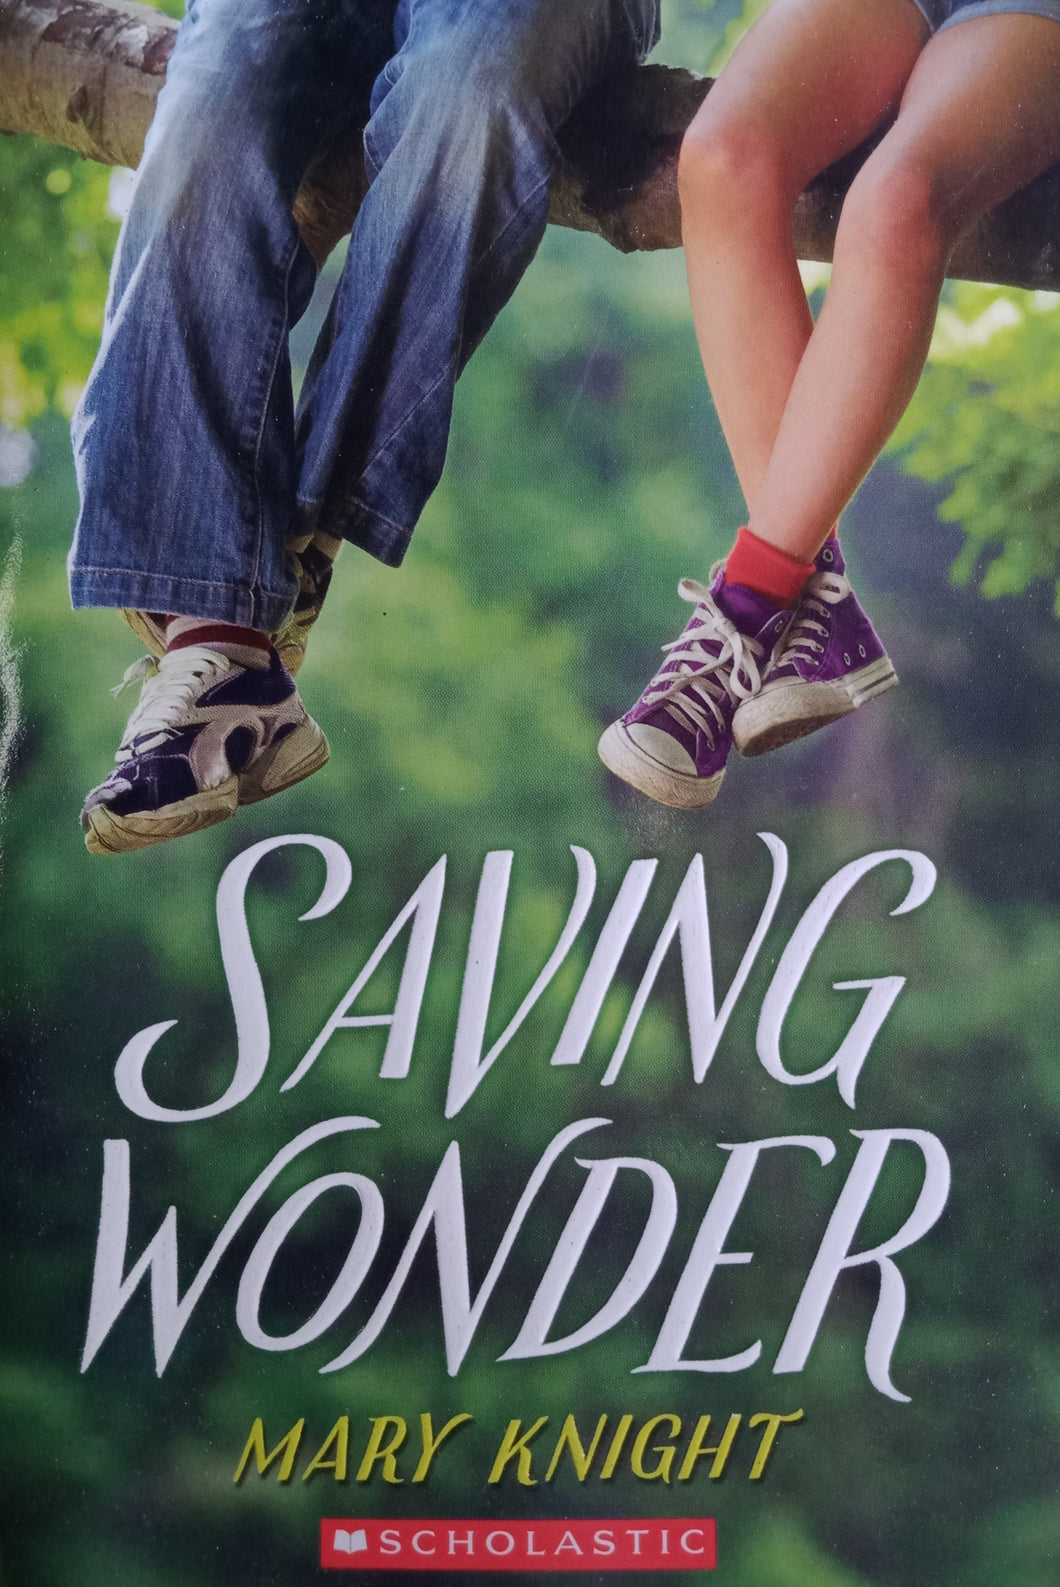 Saving Wonder by Mary Knight